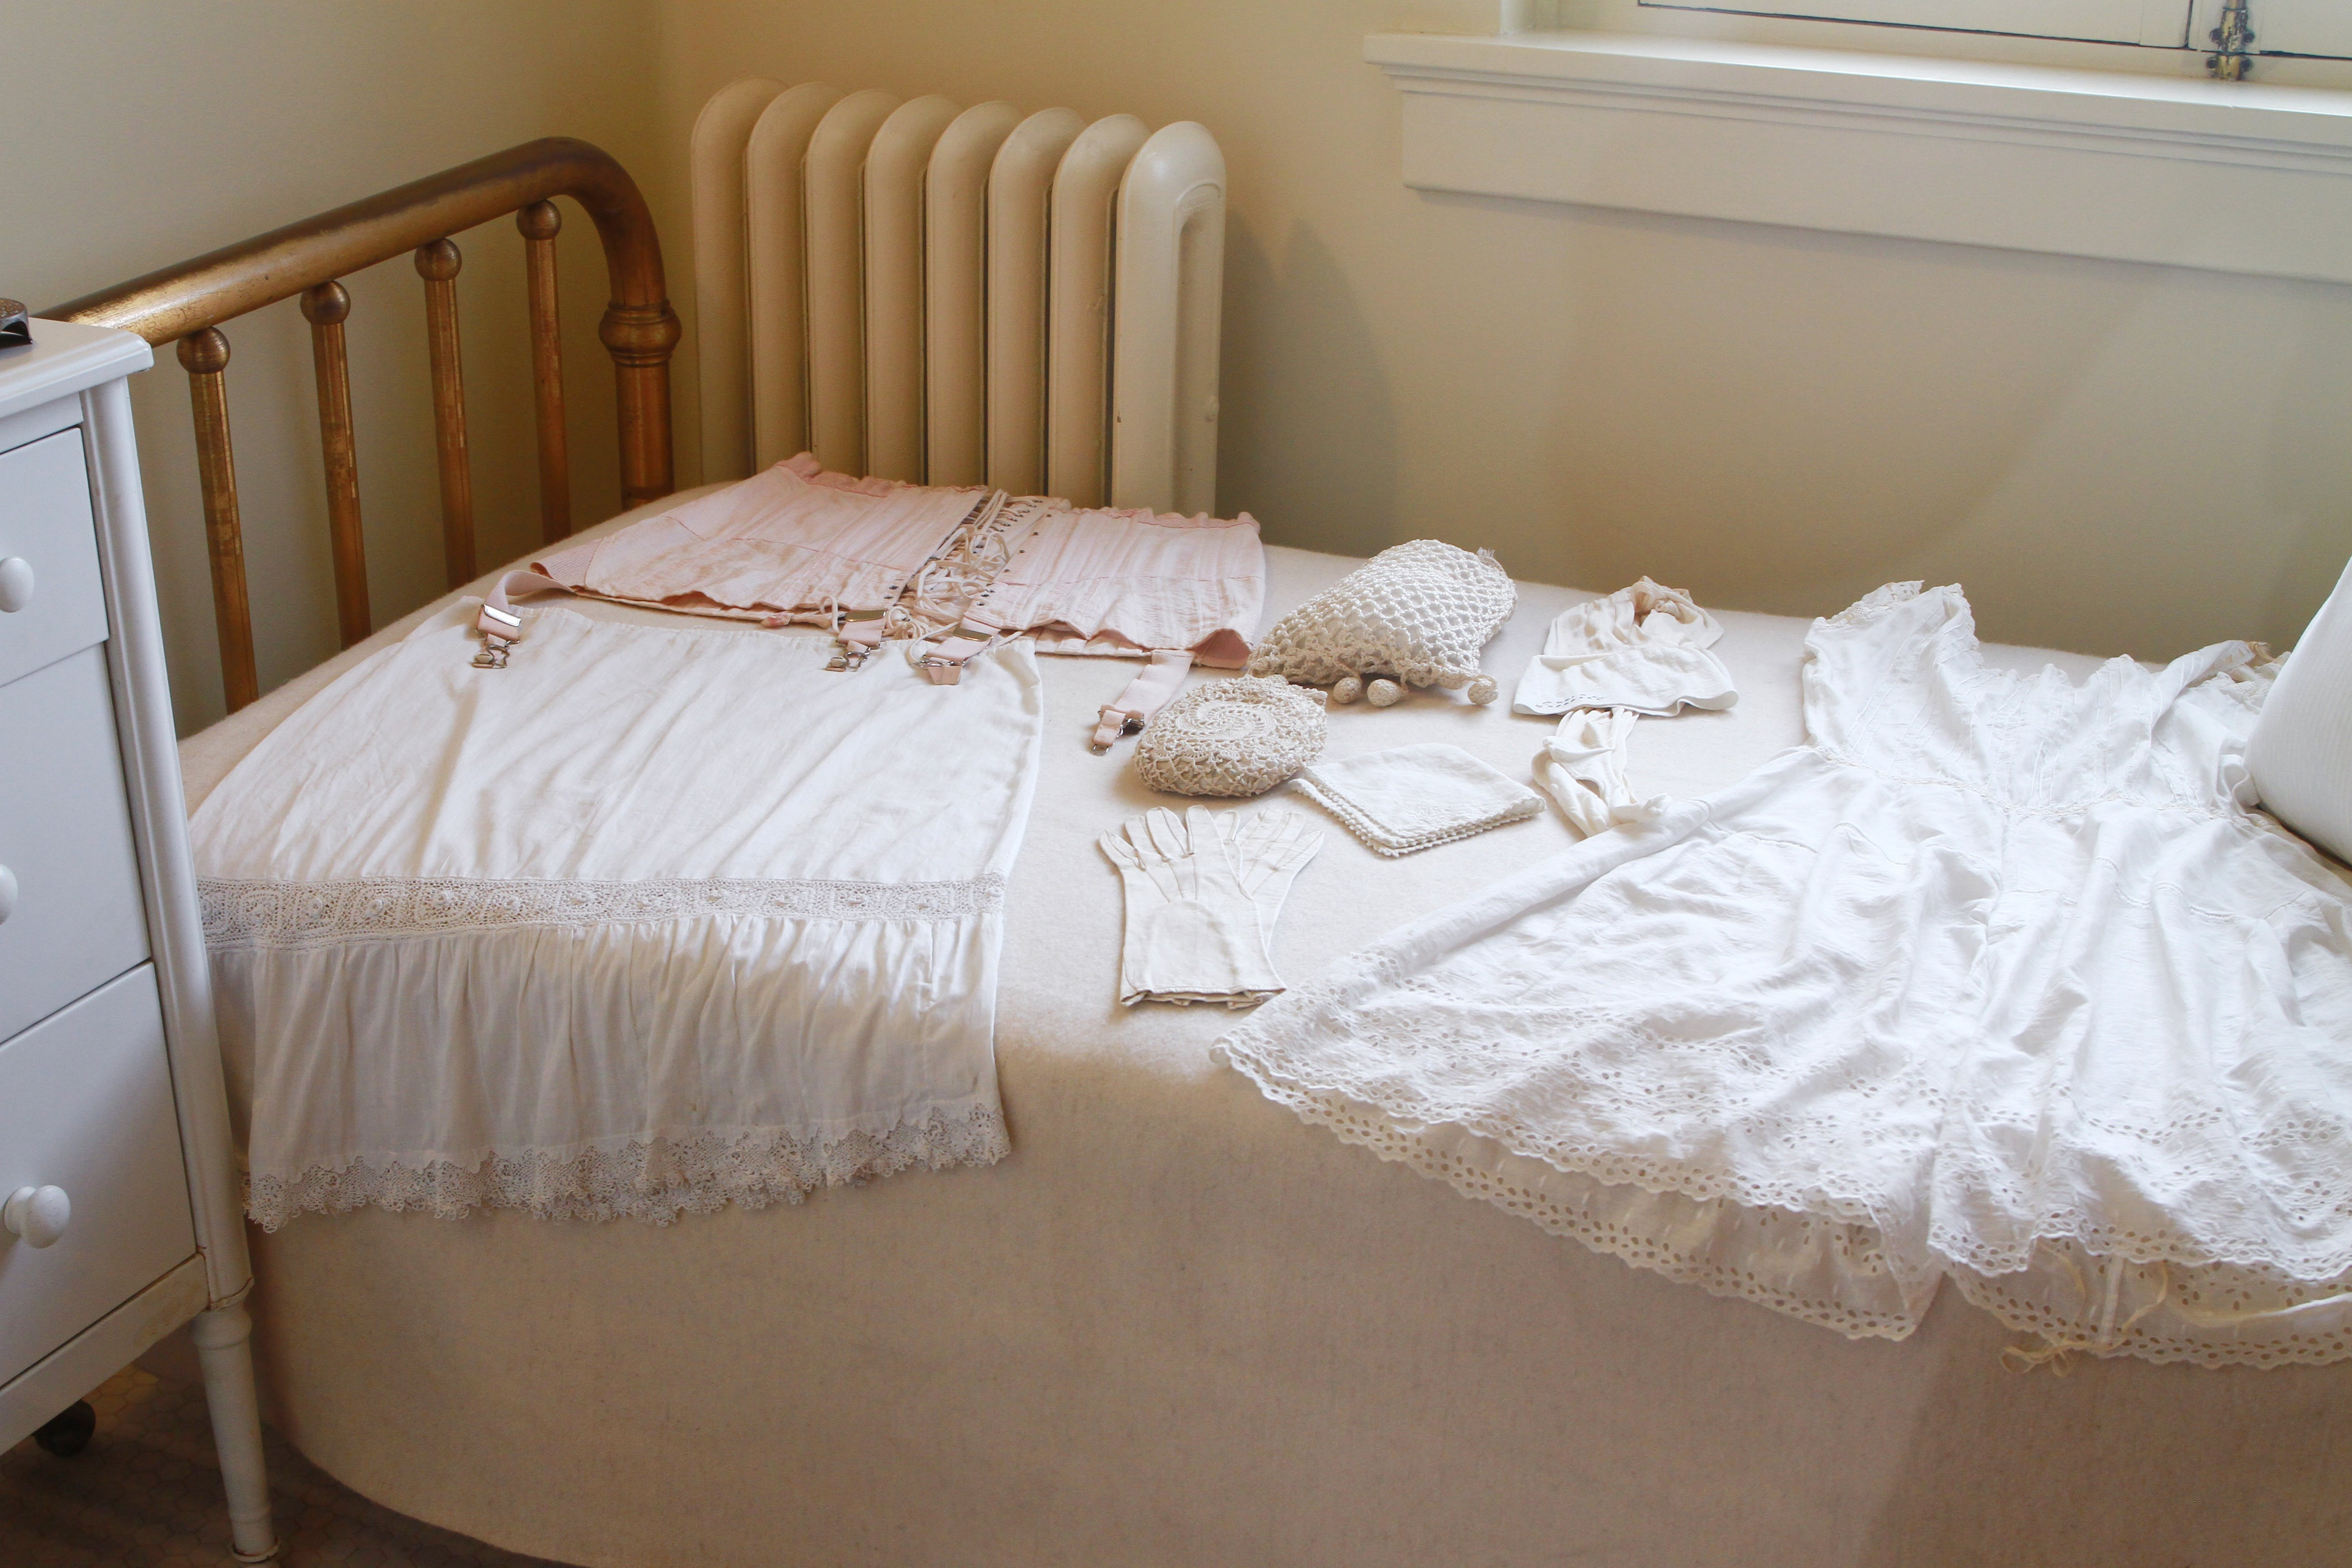 White Sleeveless Dress on White Mattress